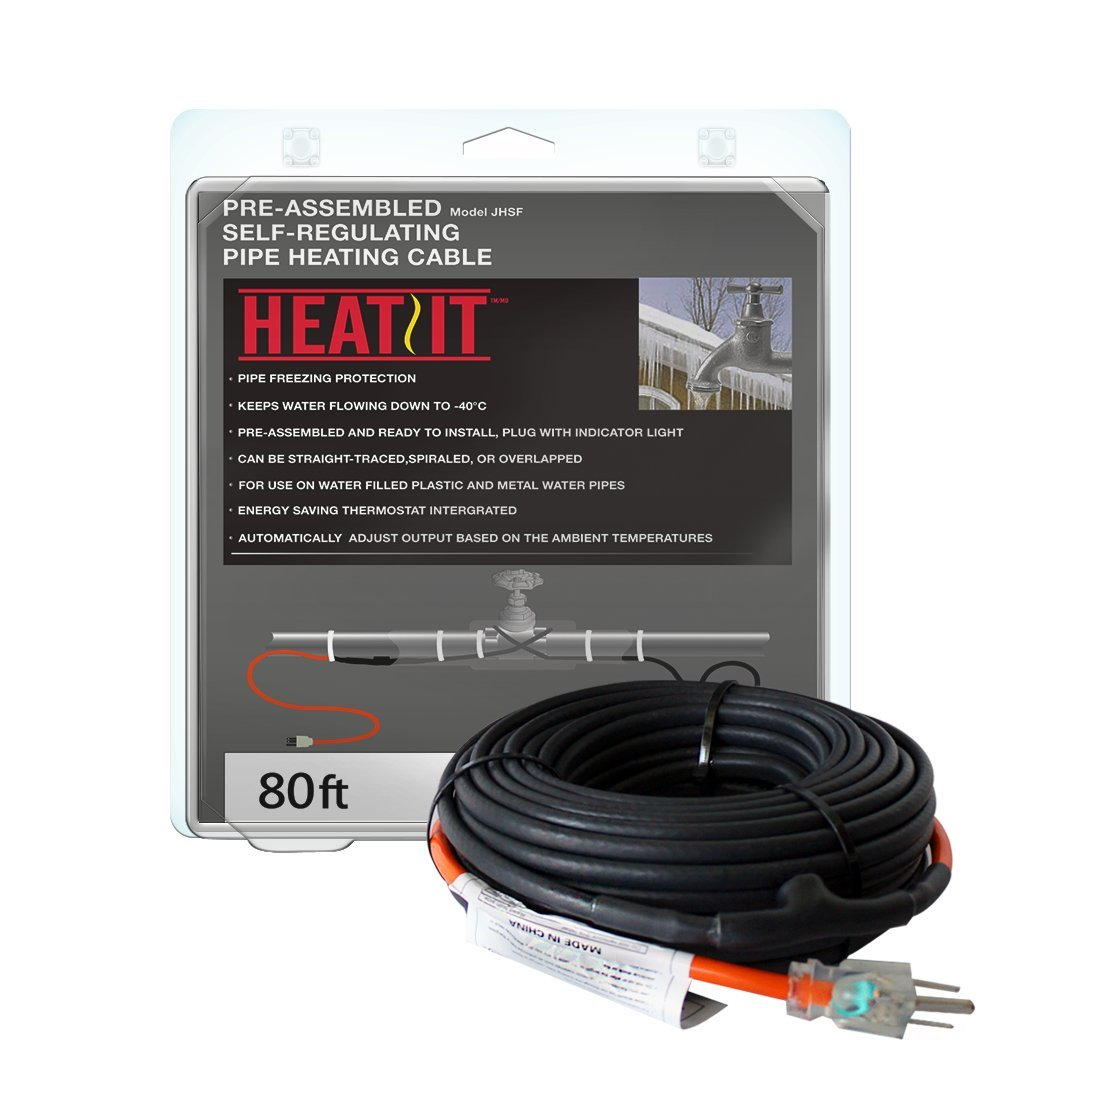 HEATIT JHSF 30-feet 120V Self Regulating Pre-assembled Pipe Heating Cable by HEATIT